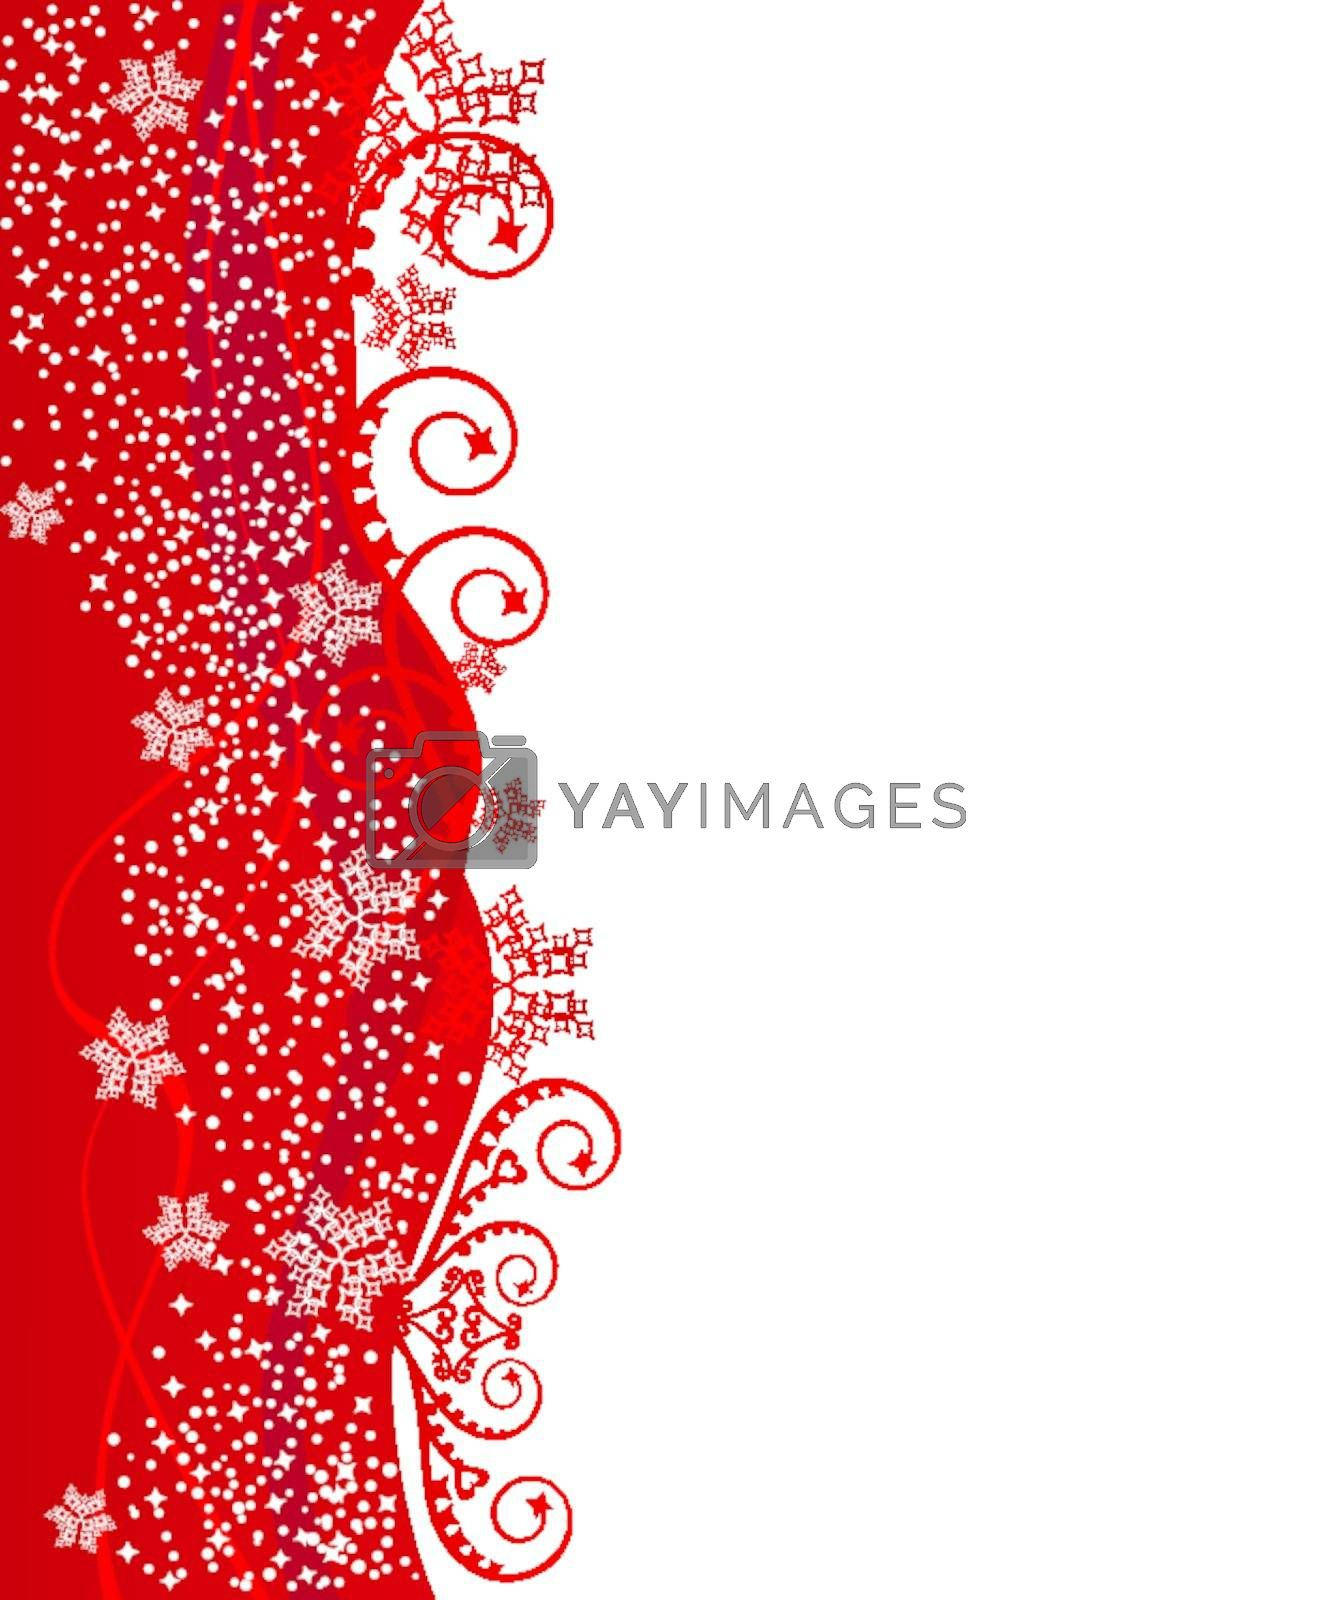 Royalty free image of Red Cristmas border design by misslina